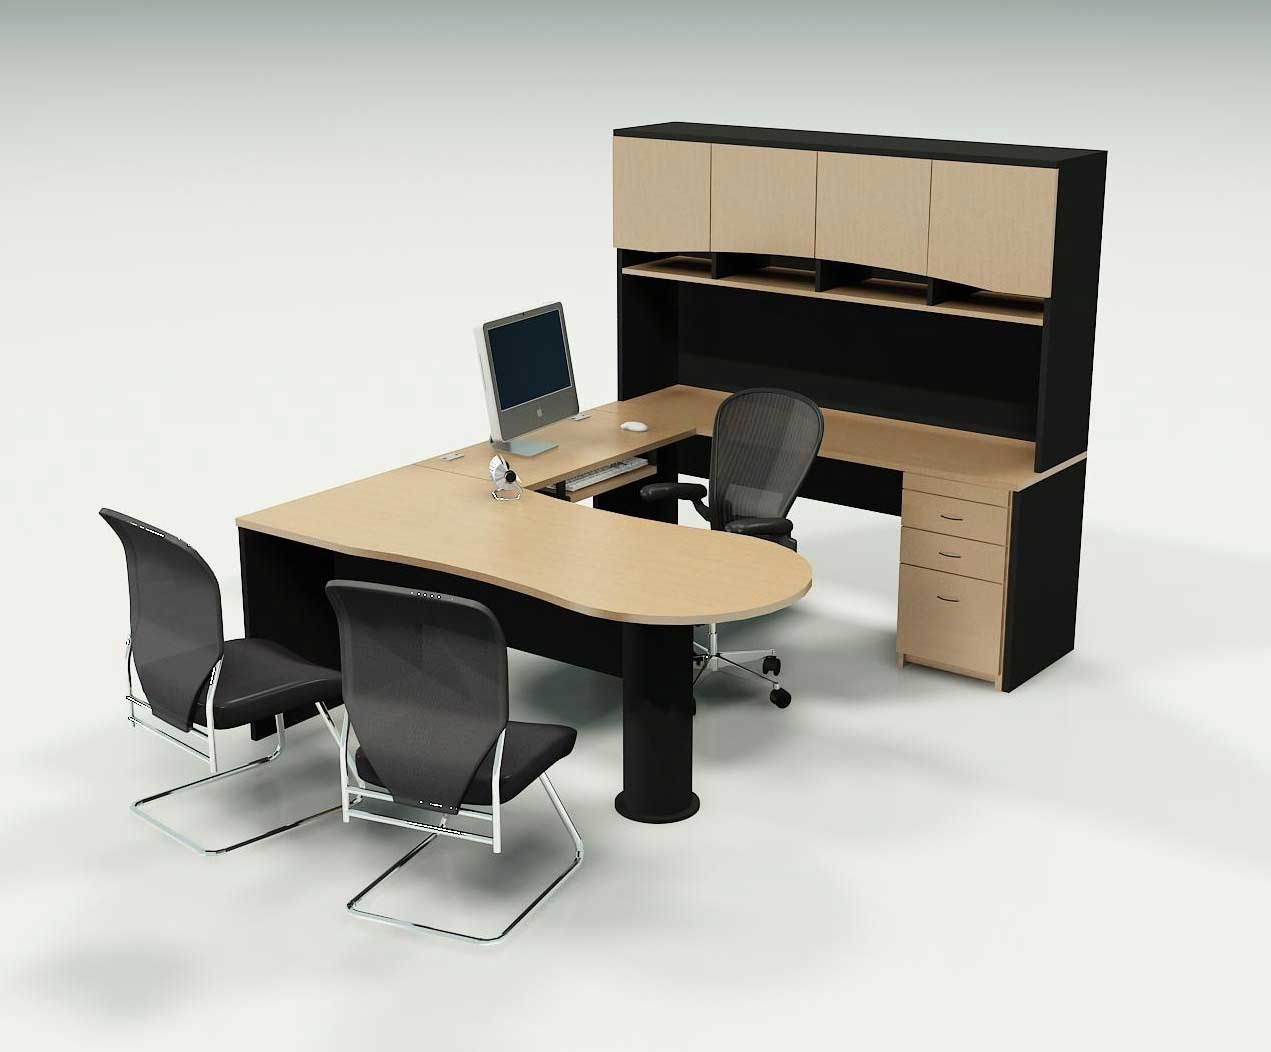 Best office desks office furniture for Creative office furniture ideas